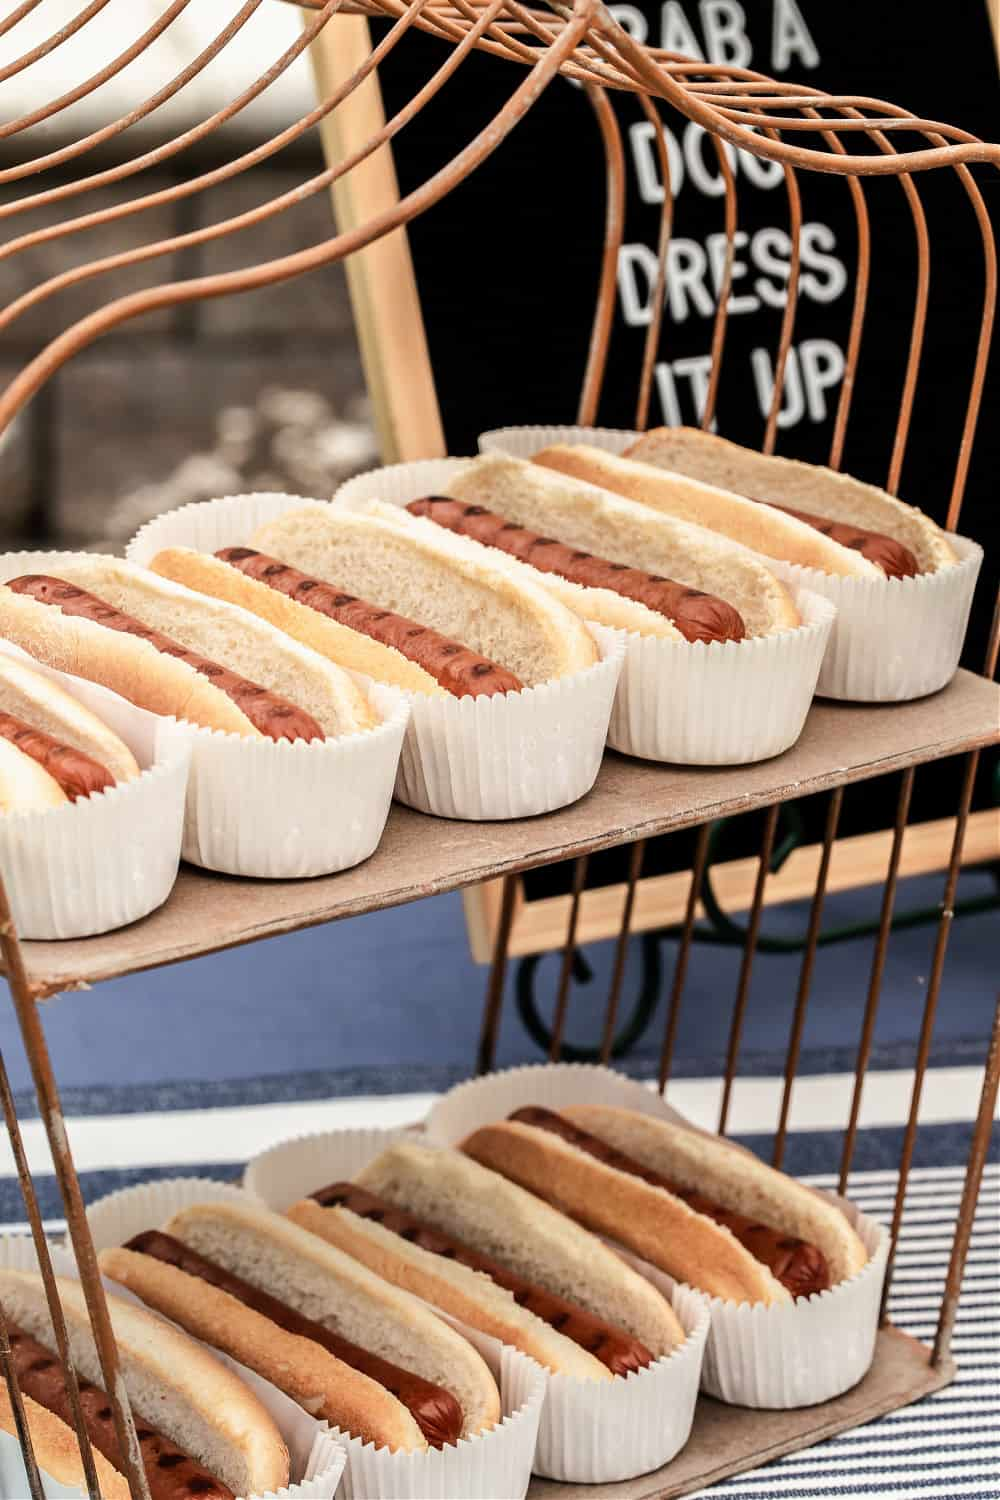 hot dogs in buns on wire shelf